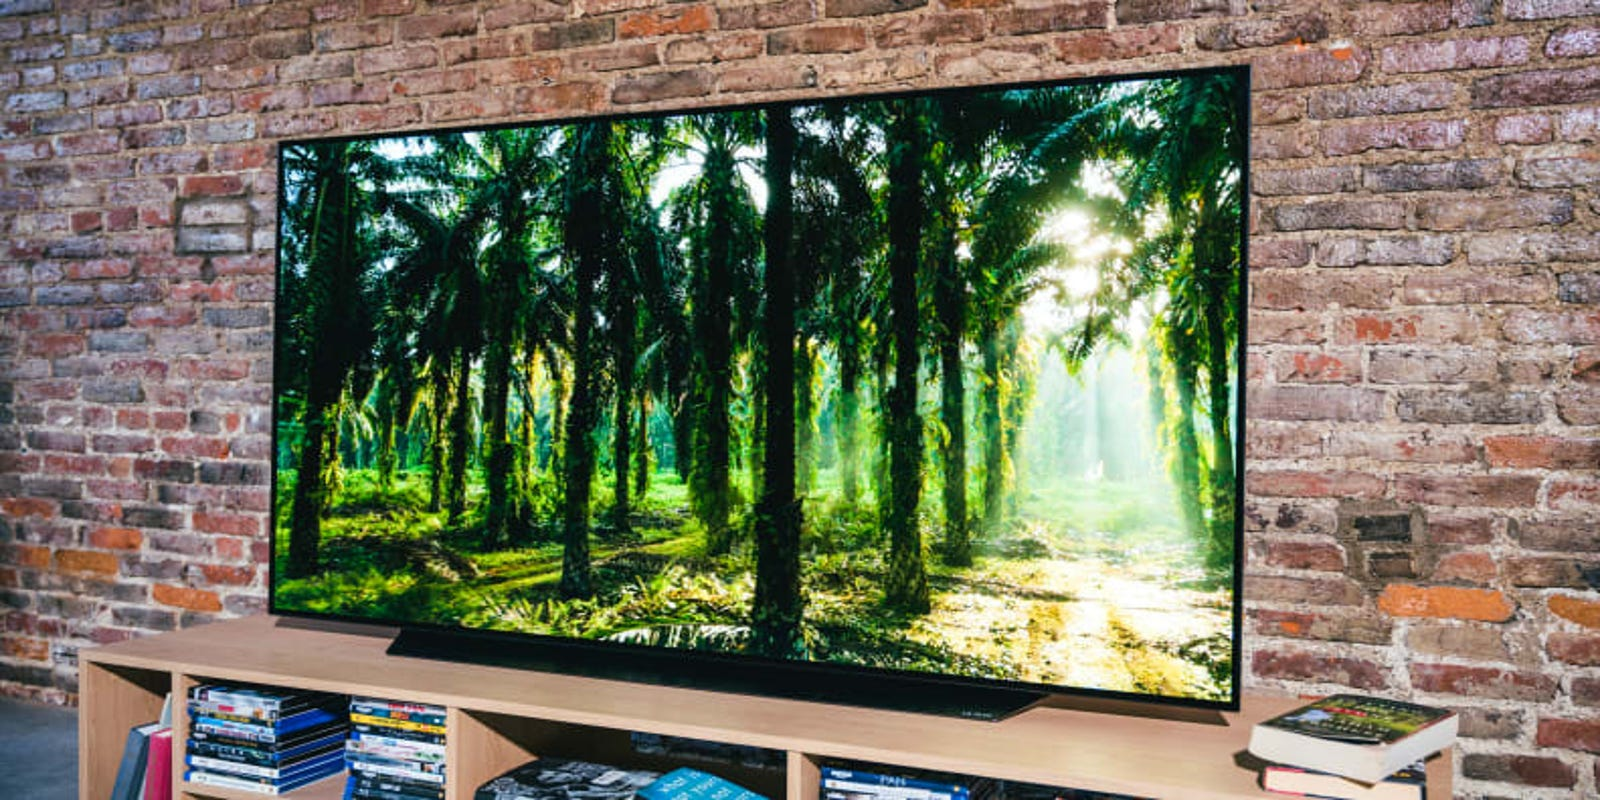 One of the best OLED TVs on the market is $1,200 off for Labor Day